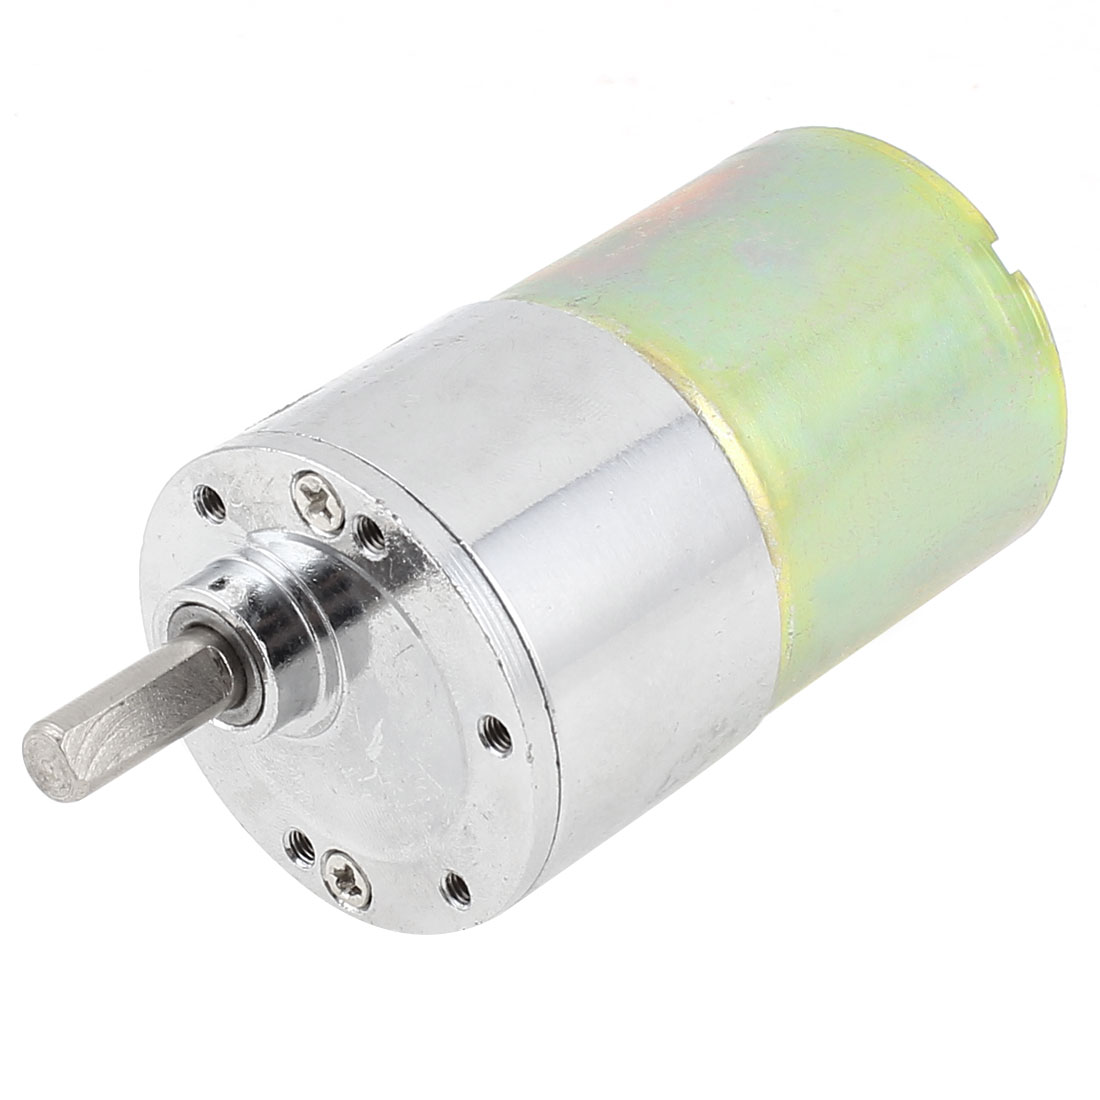 DC 12V 5000RPM 6mm x 15mm Shaft High Torque Speed Reduce Gear Box Motor